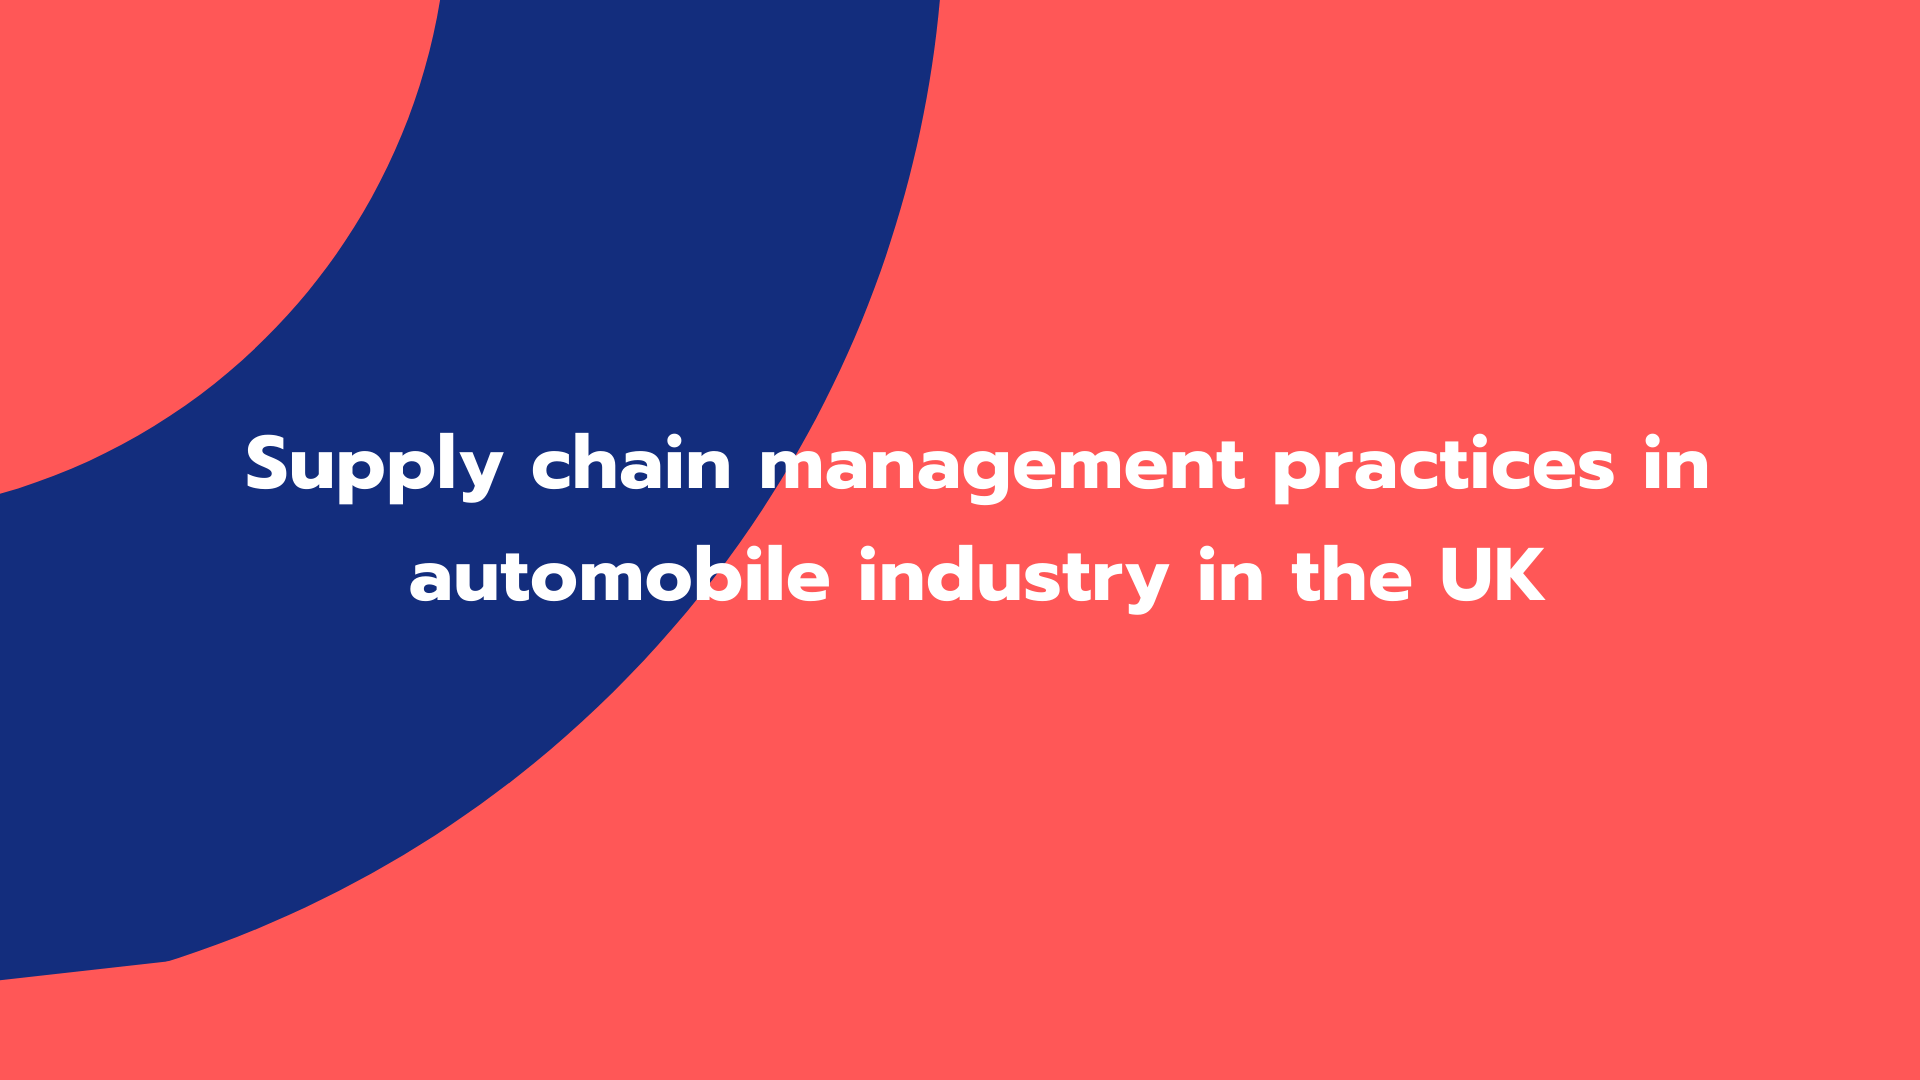 Supply chain management practices in automobile industry in the UK